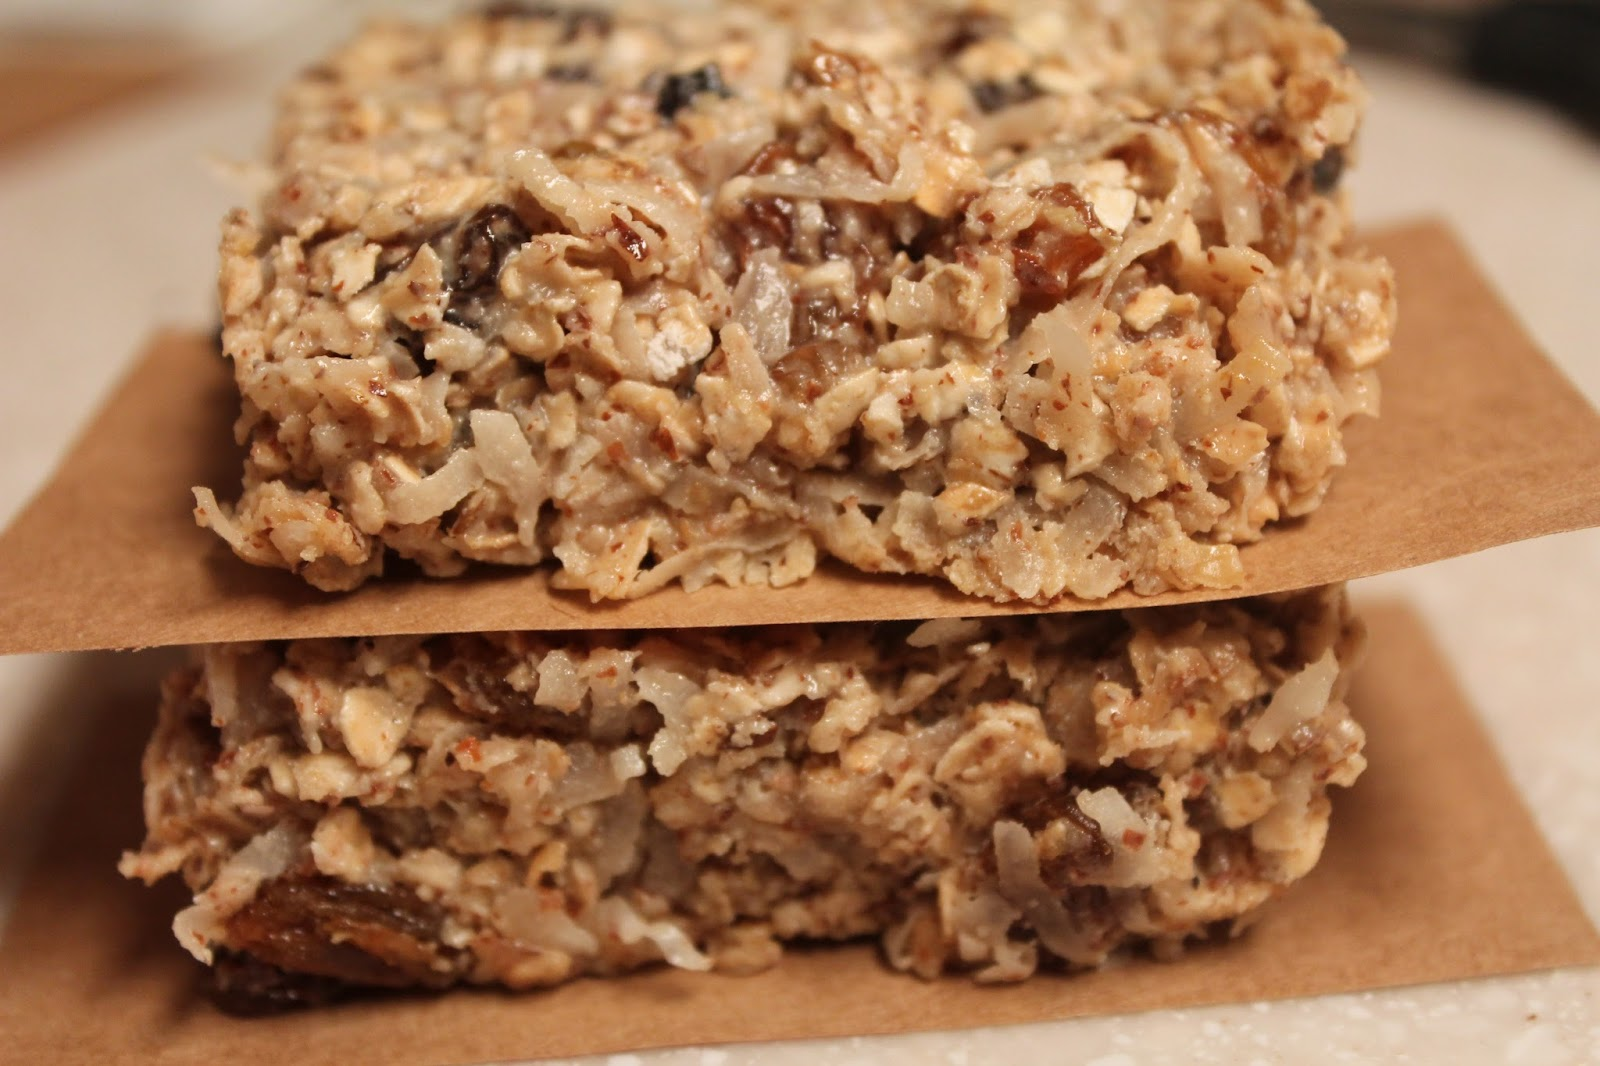 Gluten Free Casually: Protein Breakfast Bars (Gluten Free)